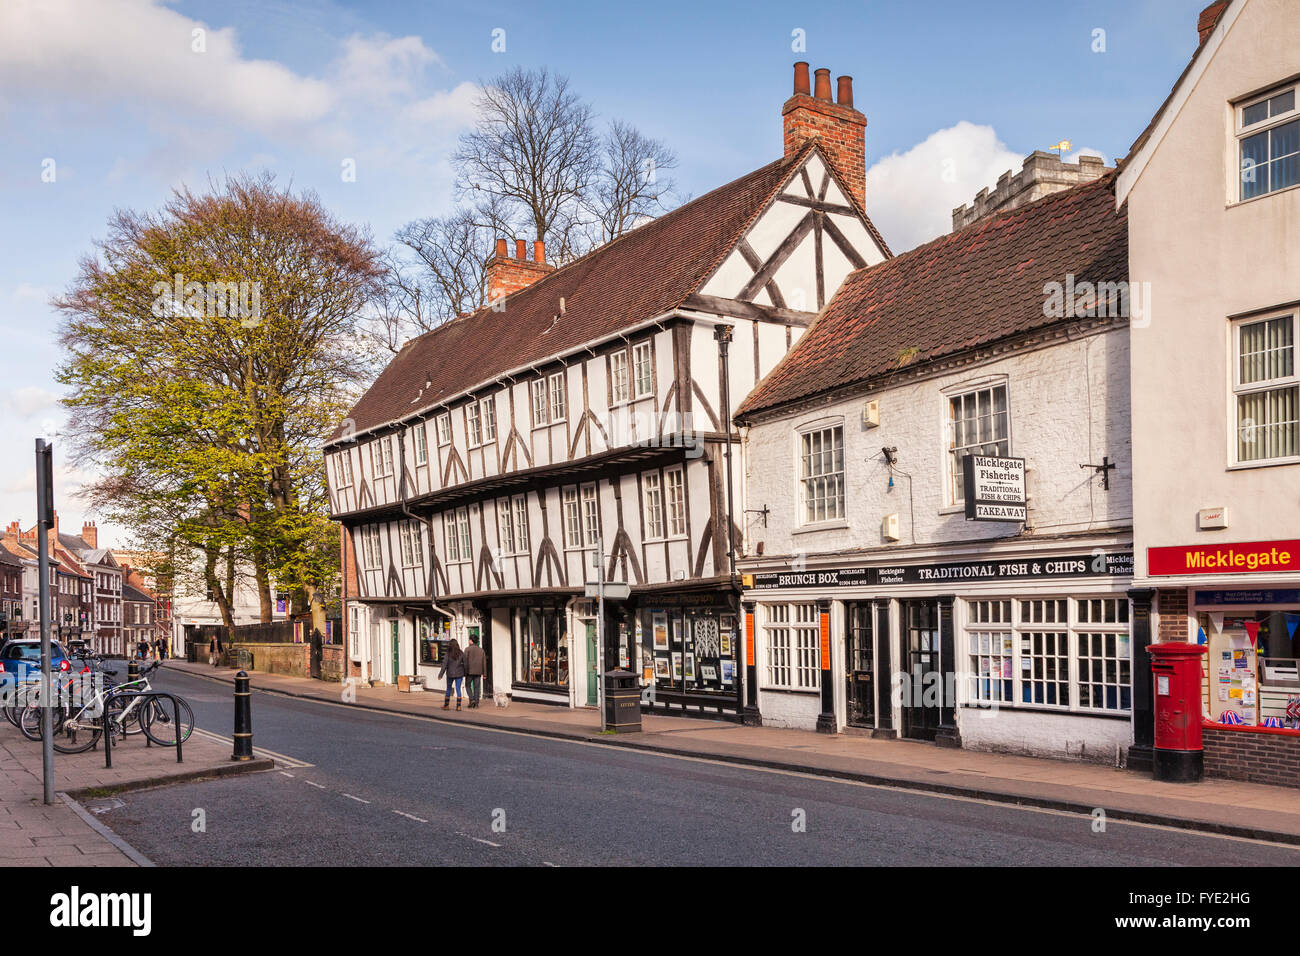 Black and white buildings in Micklegate, York, North Yorkshire, England, UK - Stock Image